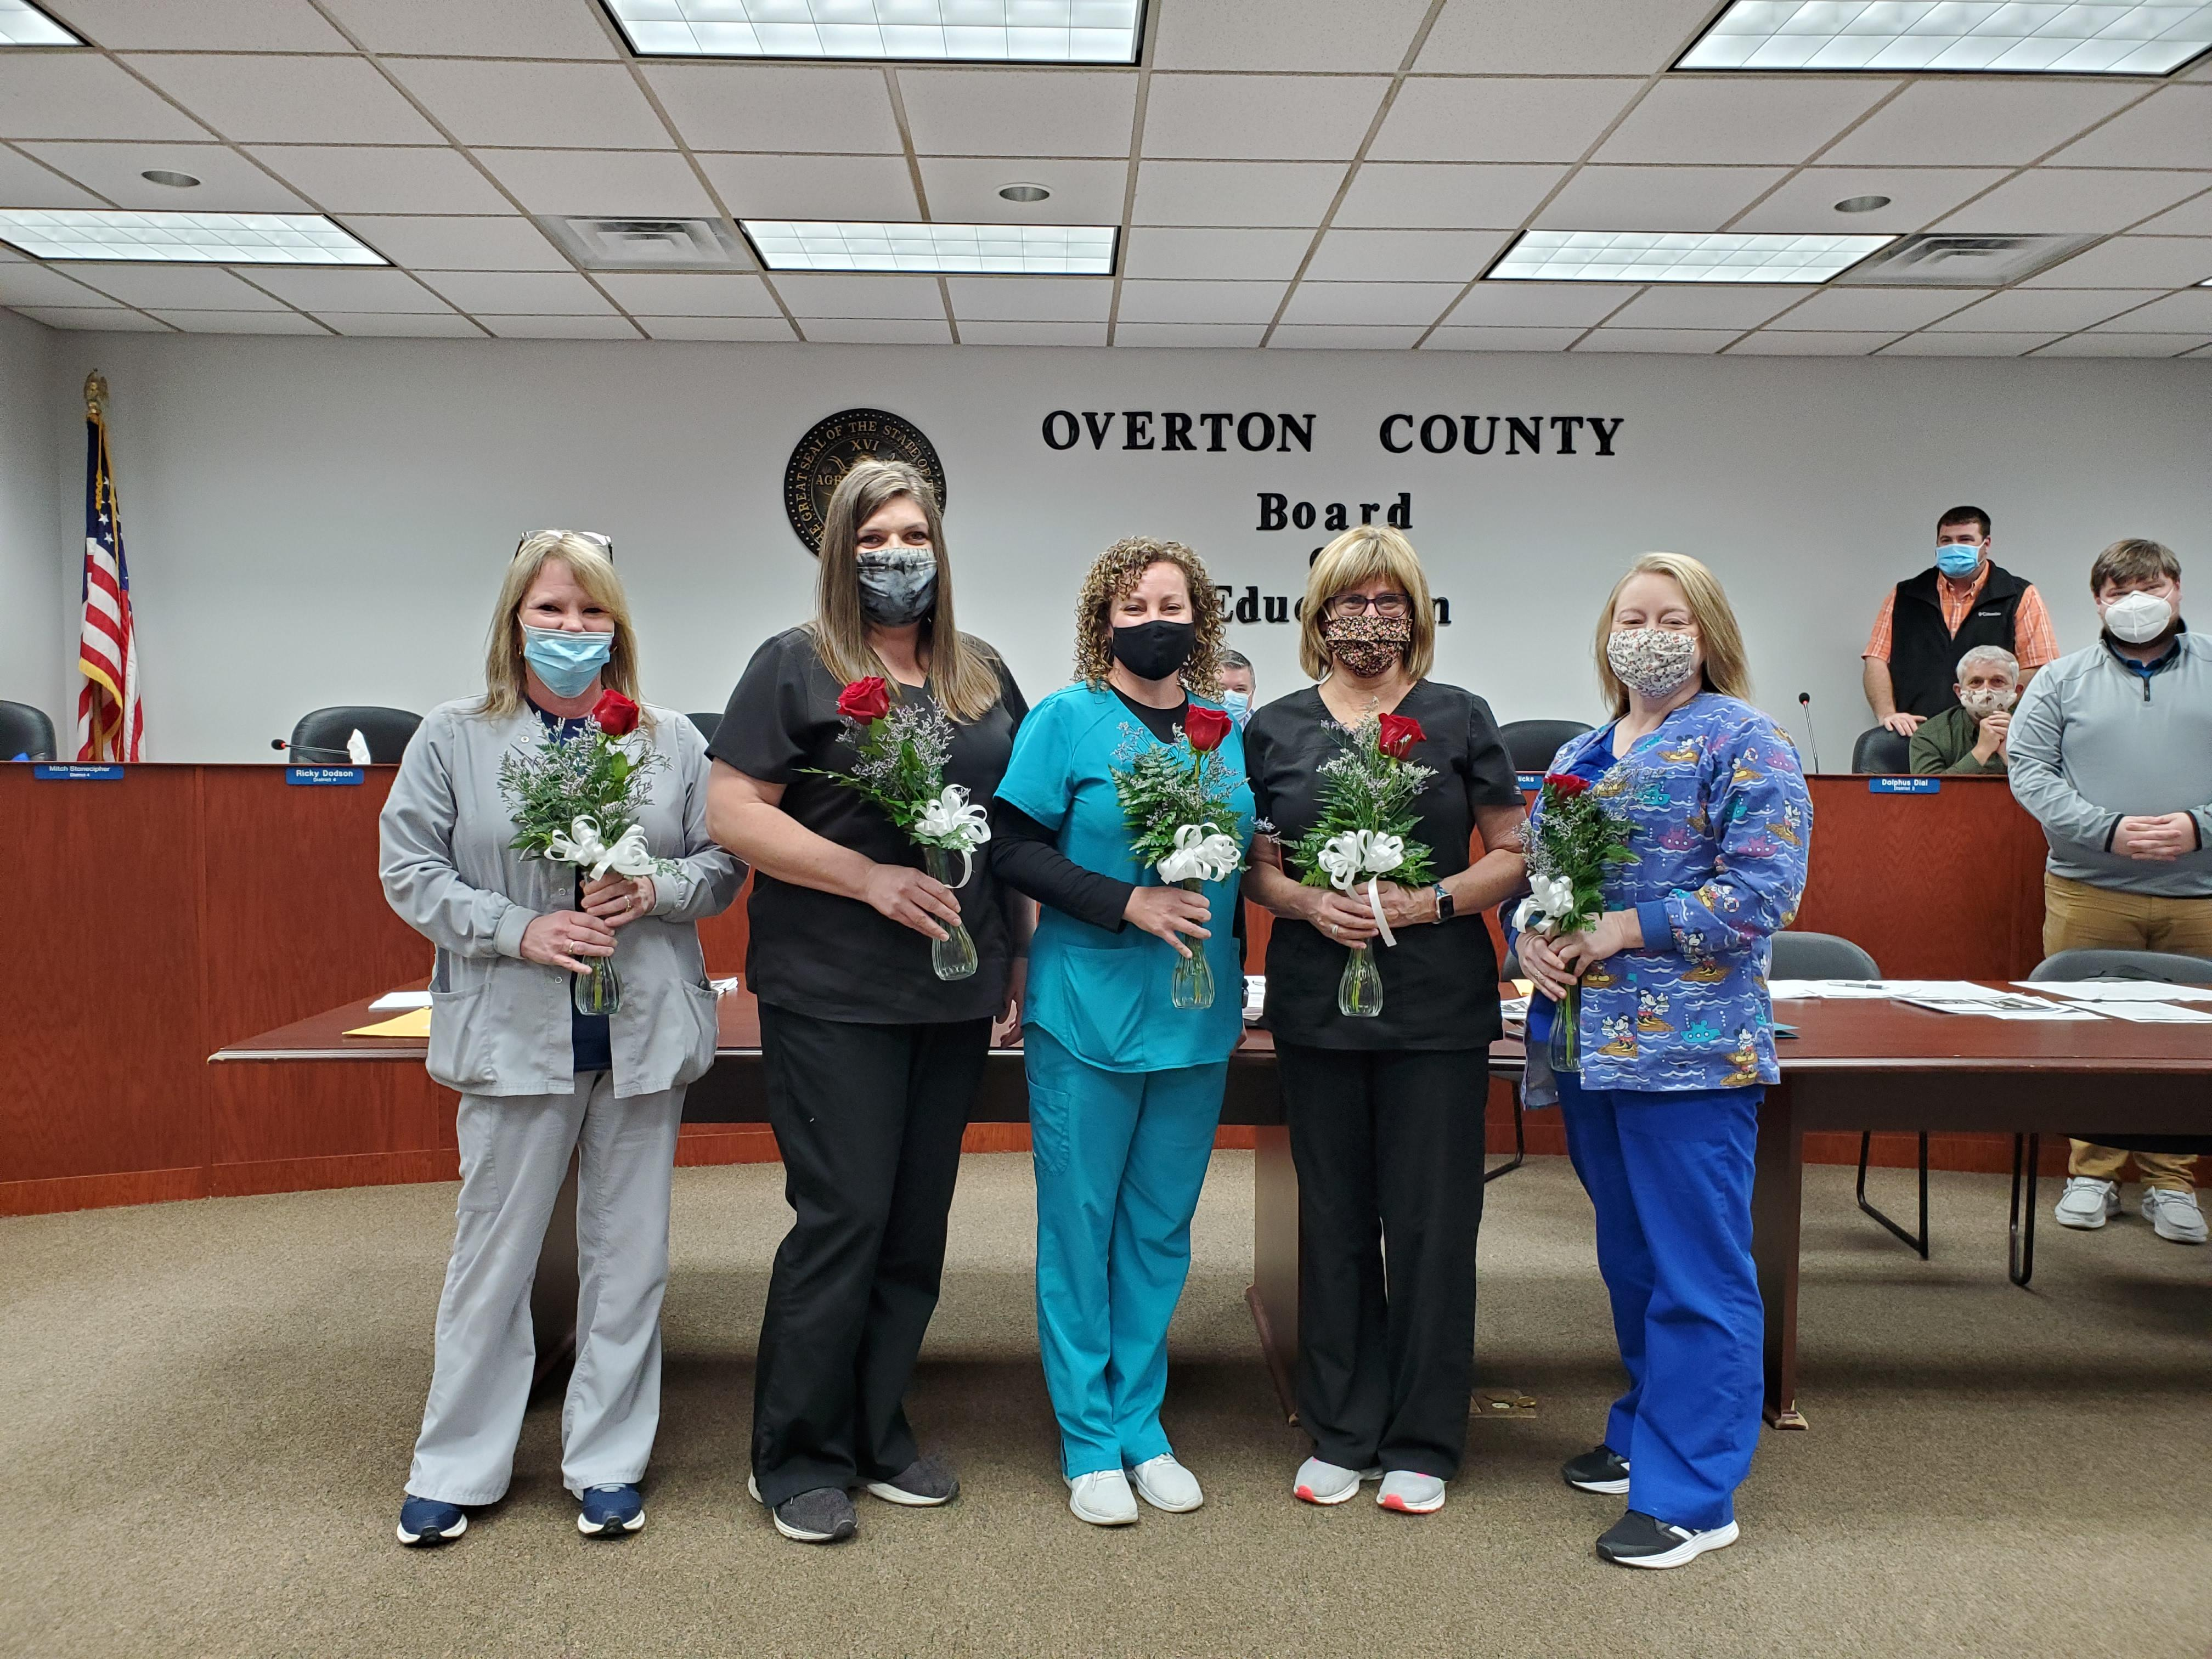 Overton County School Nurses from left to right:  Rhonda Smith, Rebecca Gunnels, Marcie Matthews, Cindy Sells, and Tammy Nimmo